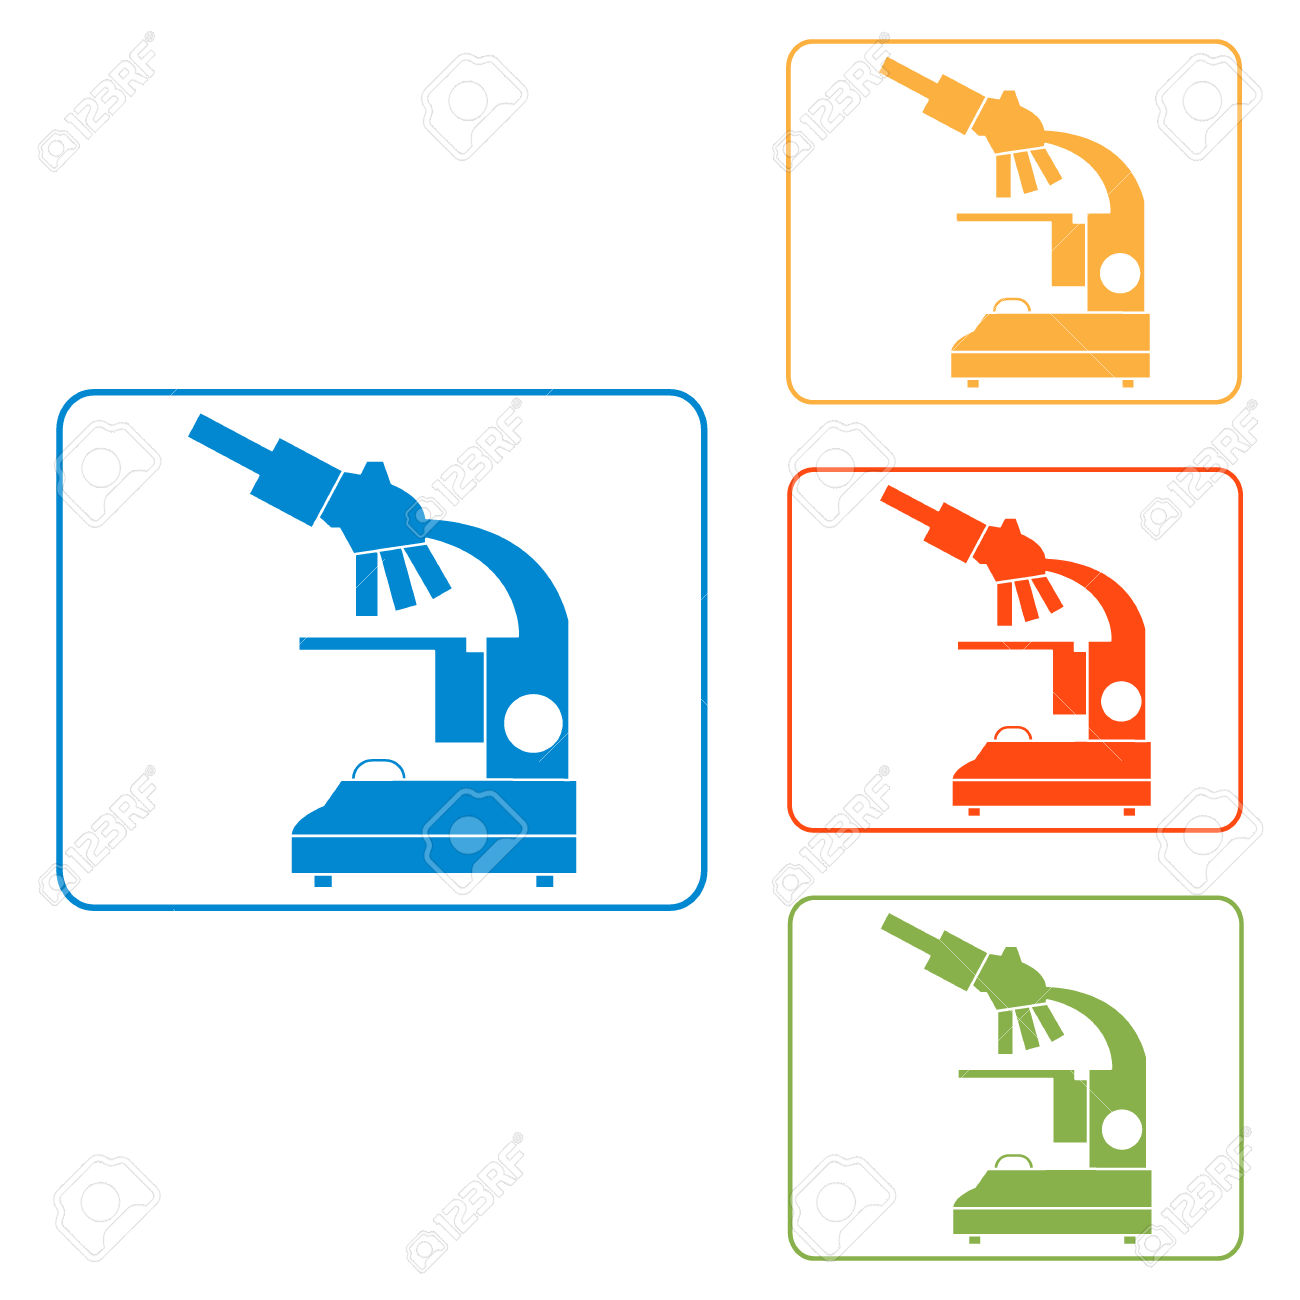 Stylized Vector Icons Of Microscope In Different Colors.